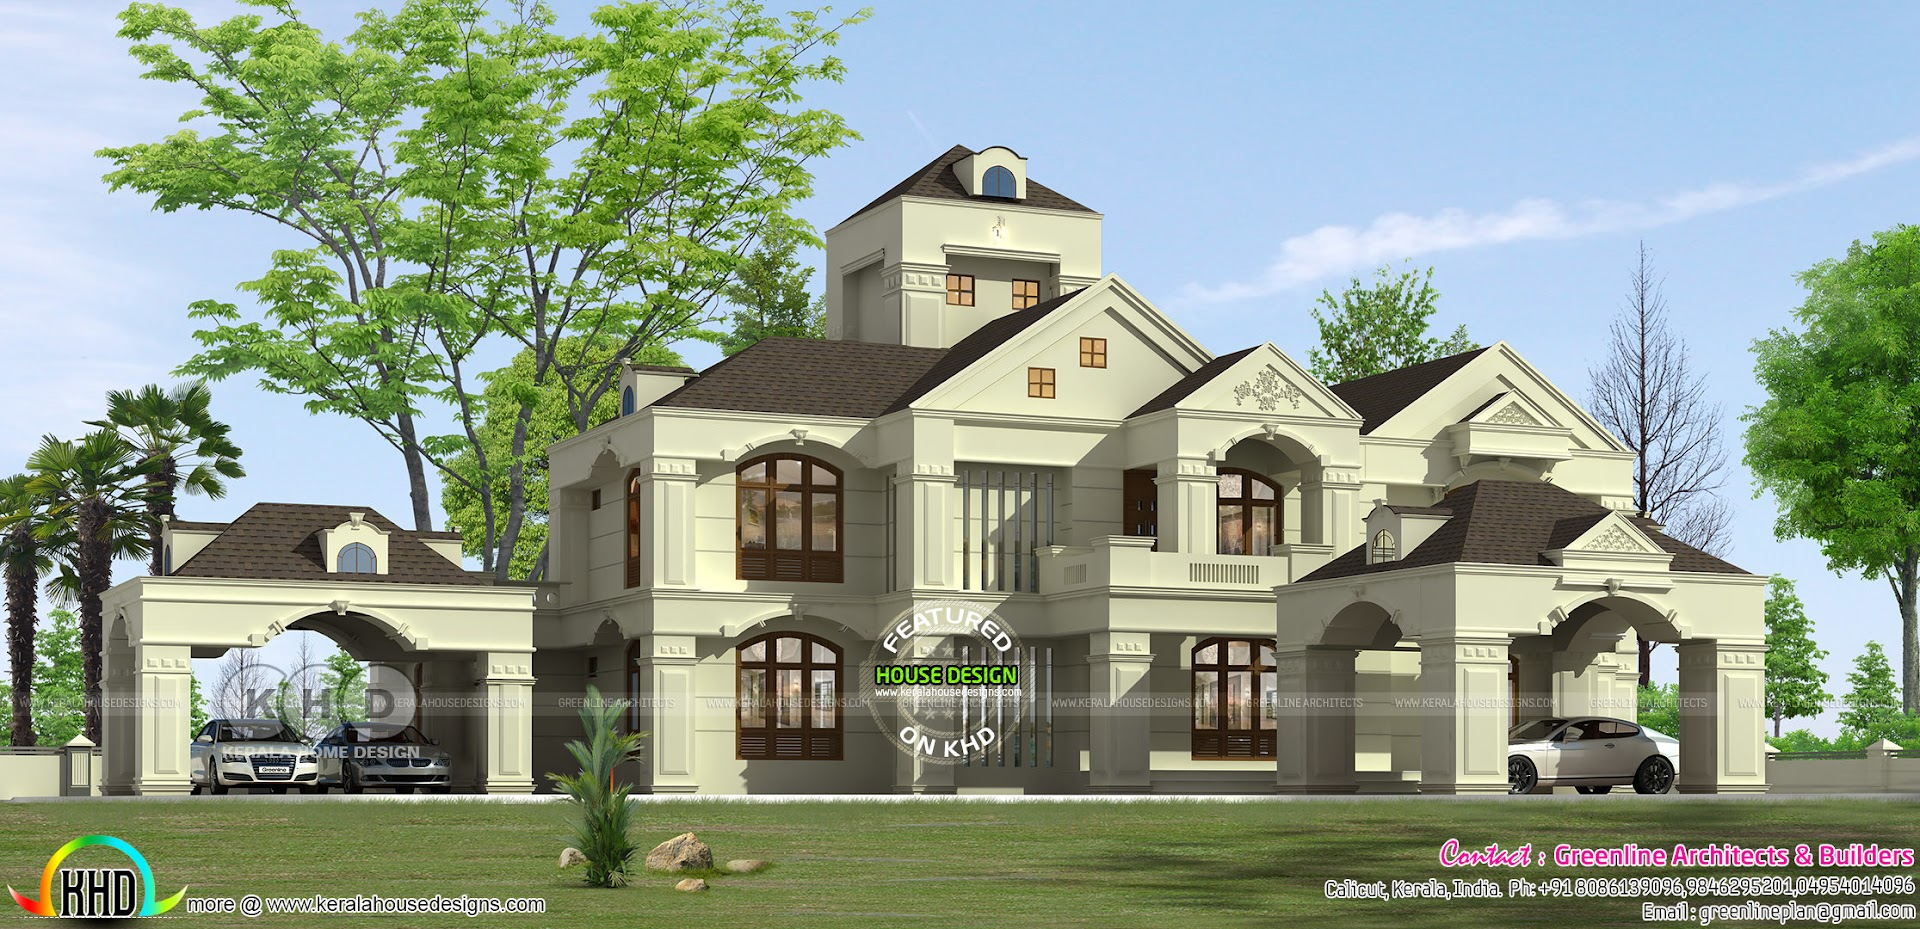 5700 square feet luxury Colonial home with 5 BHK - Kerala ... on program to draw house plans, luxury villa house plans, luxury brick house plans, luxury beach house plans, one story popular house plans, house floor plans, luxury a frame house plans, colonial garage plans, georgian mansion house plans, luxury one story house plans, luxury estate house plans, luxury small house plans, luxury chinese house plans, luxury adobe house plans, luxury shotgun house plans, luxury coastal house plans, ranch house plans, mediterranean house plans, luxury hillside house plans, luxury three story house plans,